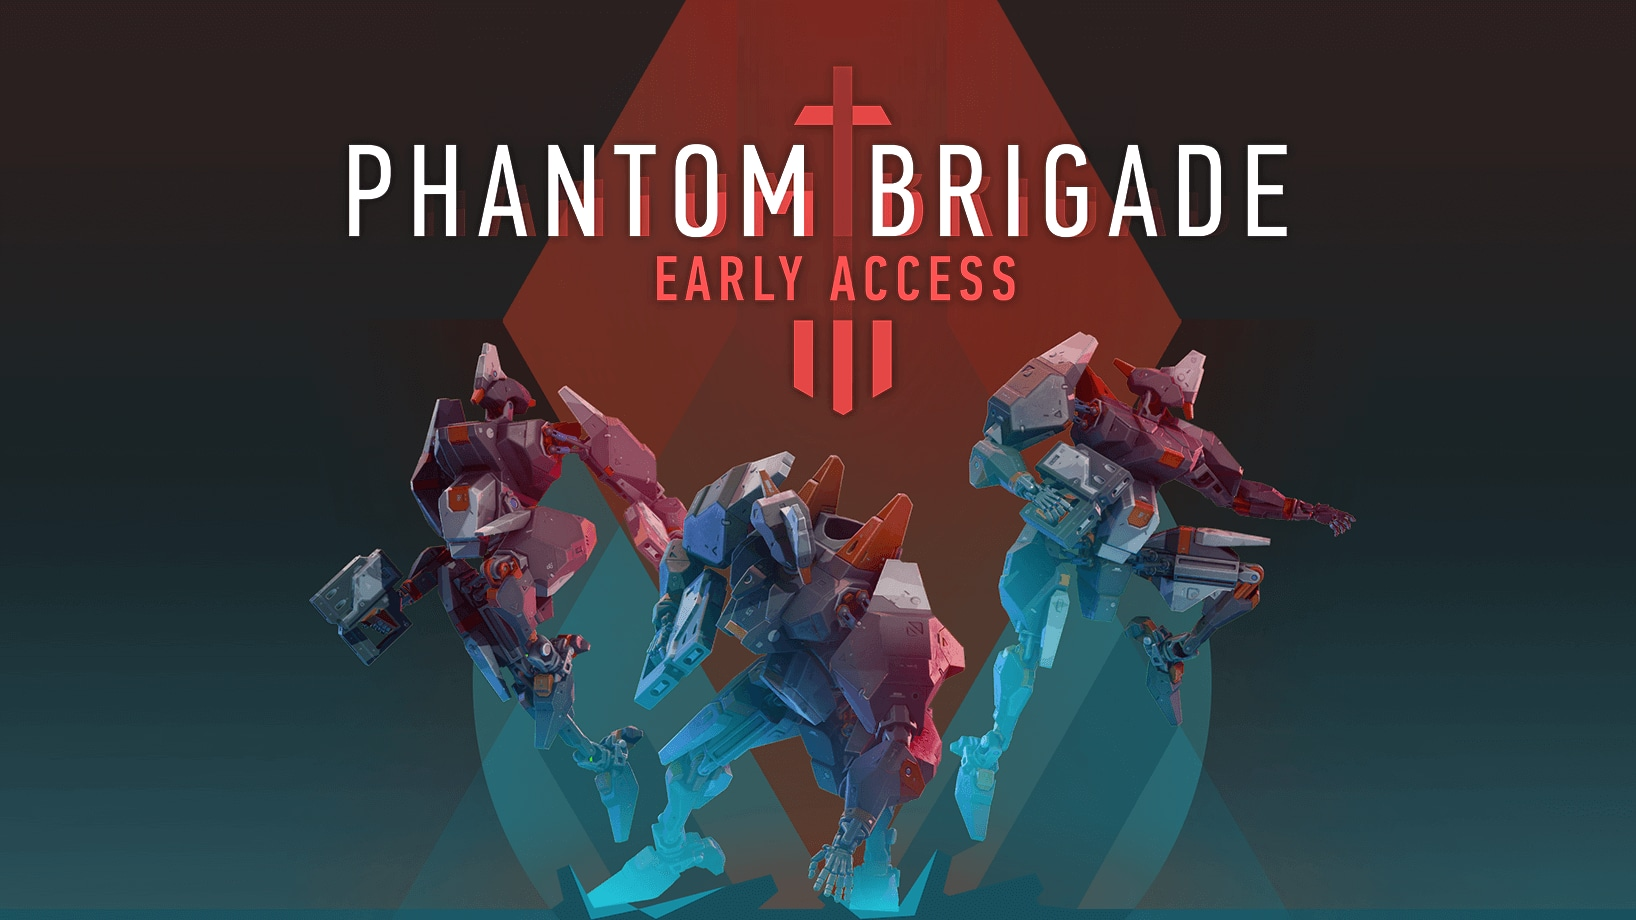 Phantom Brigade Early Access available now Epic Games Store